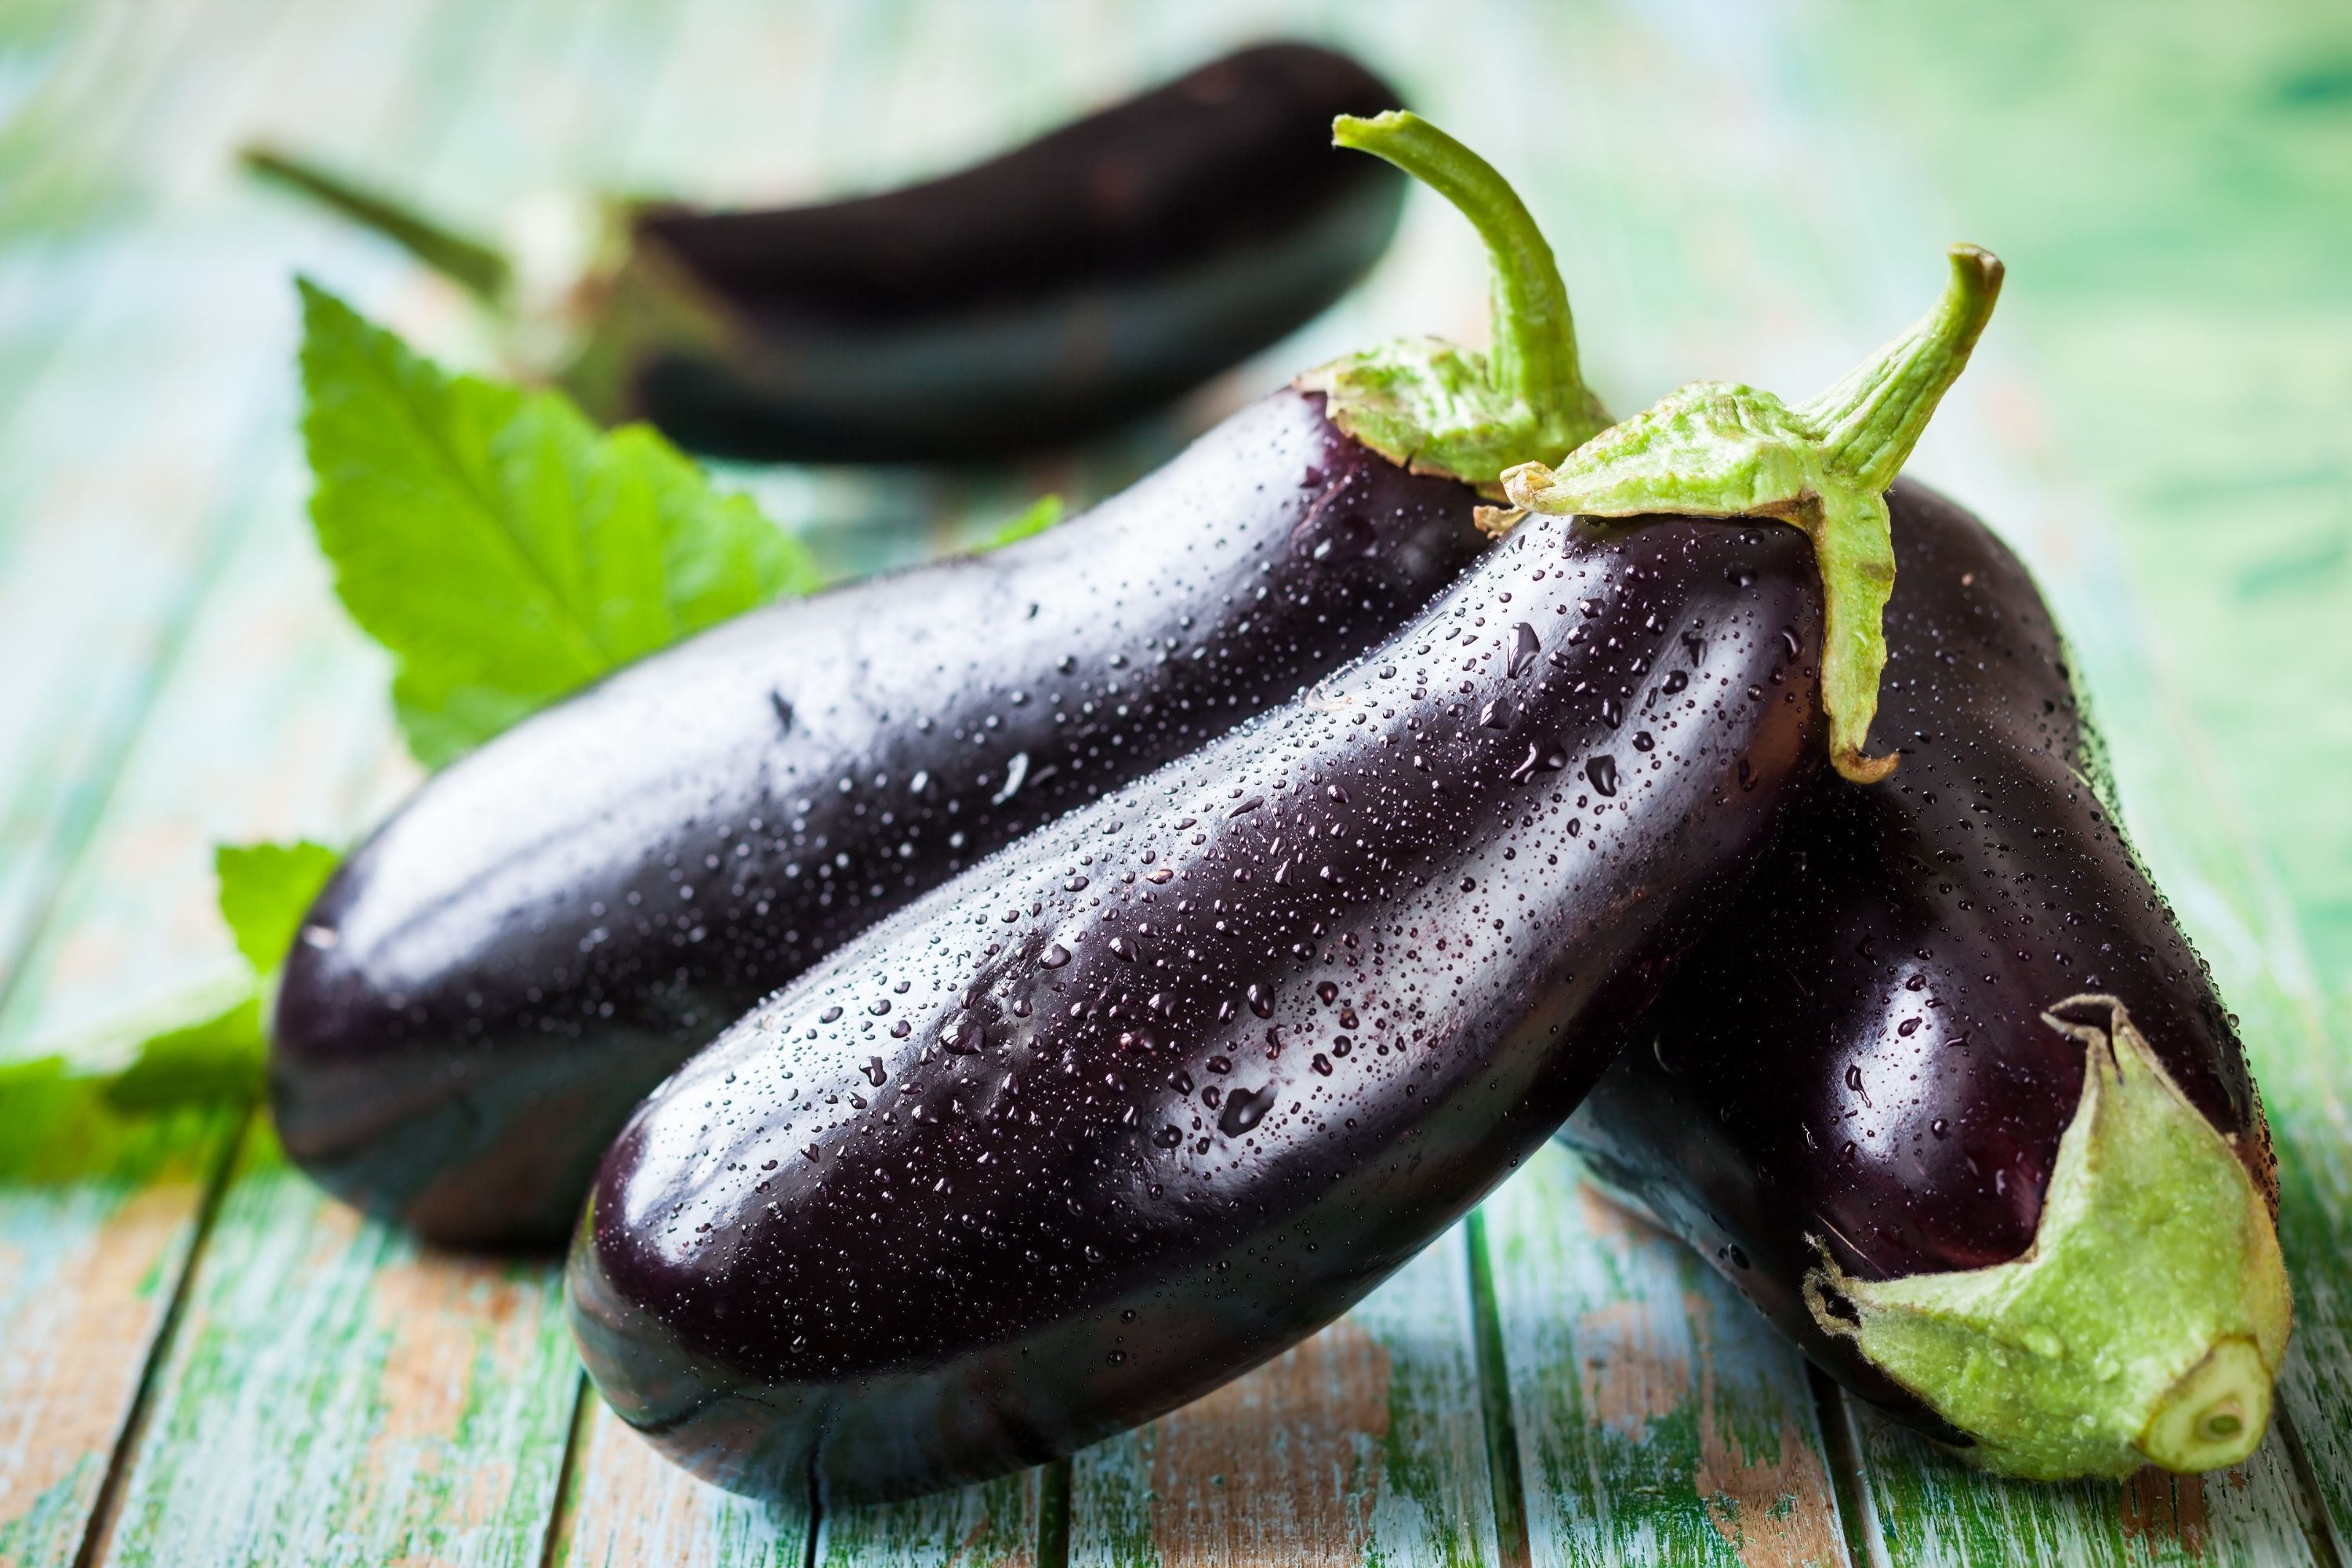 What to Make Out Of Eggplants